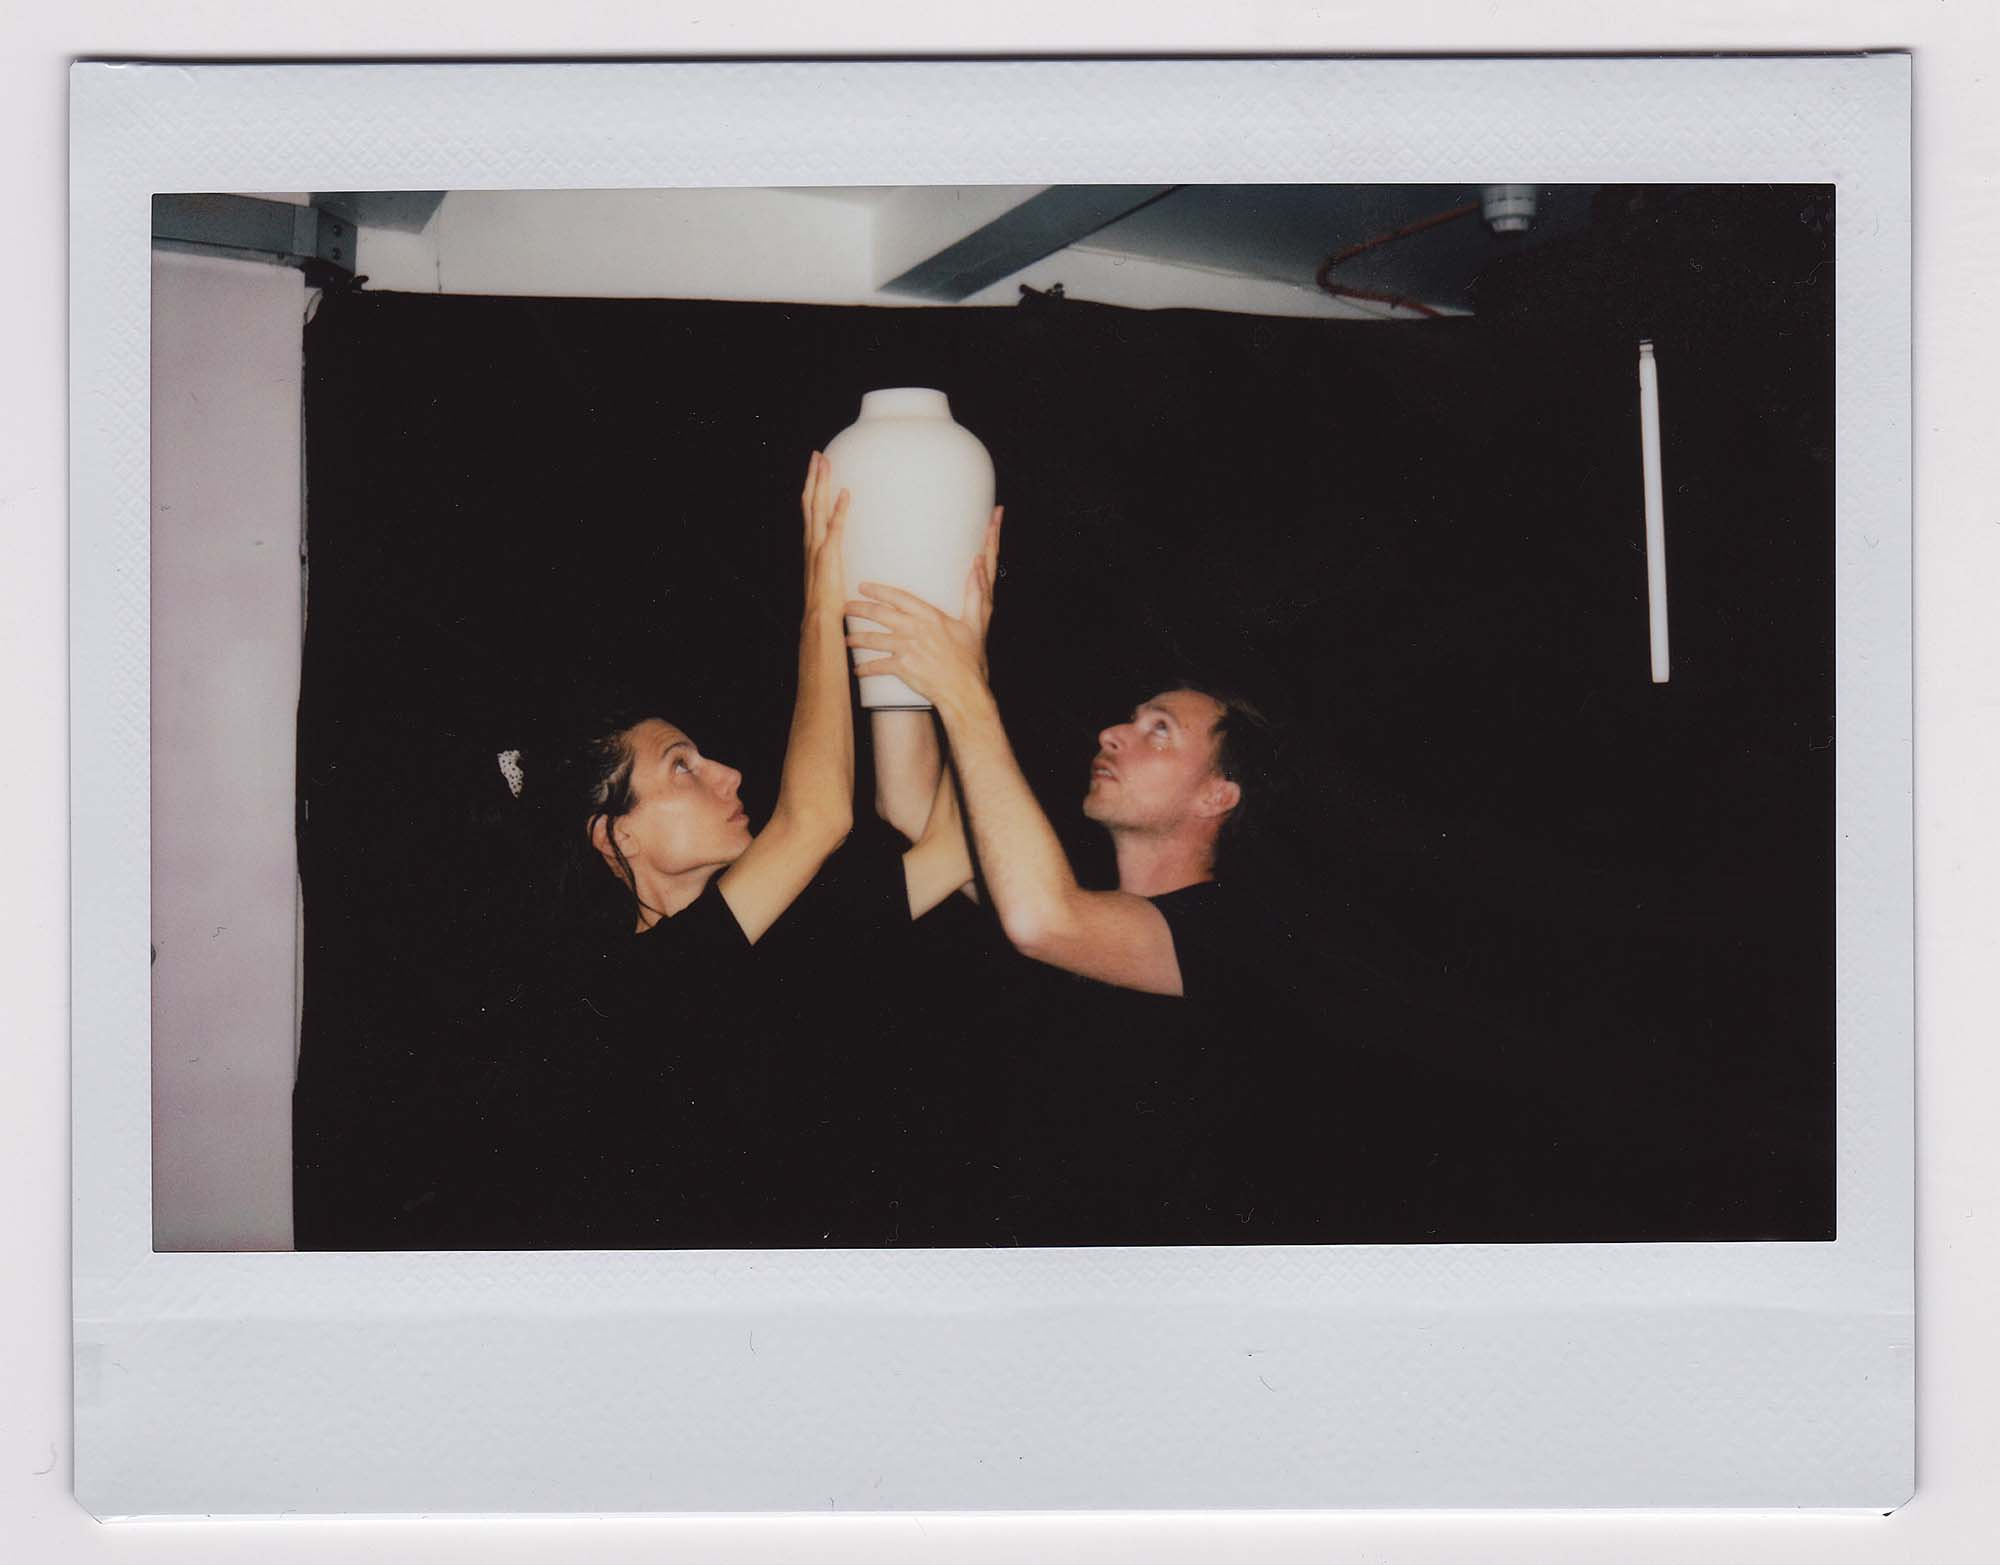 A portrait of Tim and Sarah raising a Hold Me vase above their heads